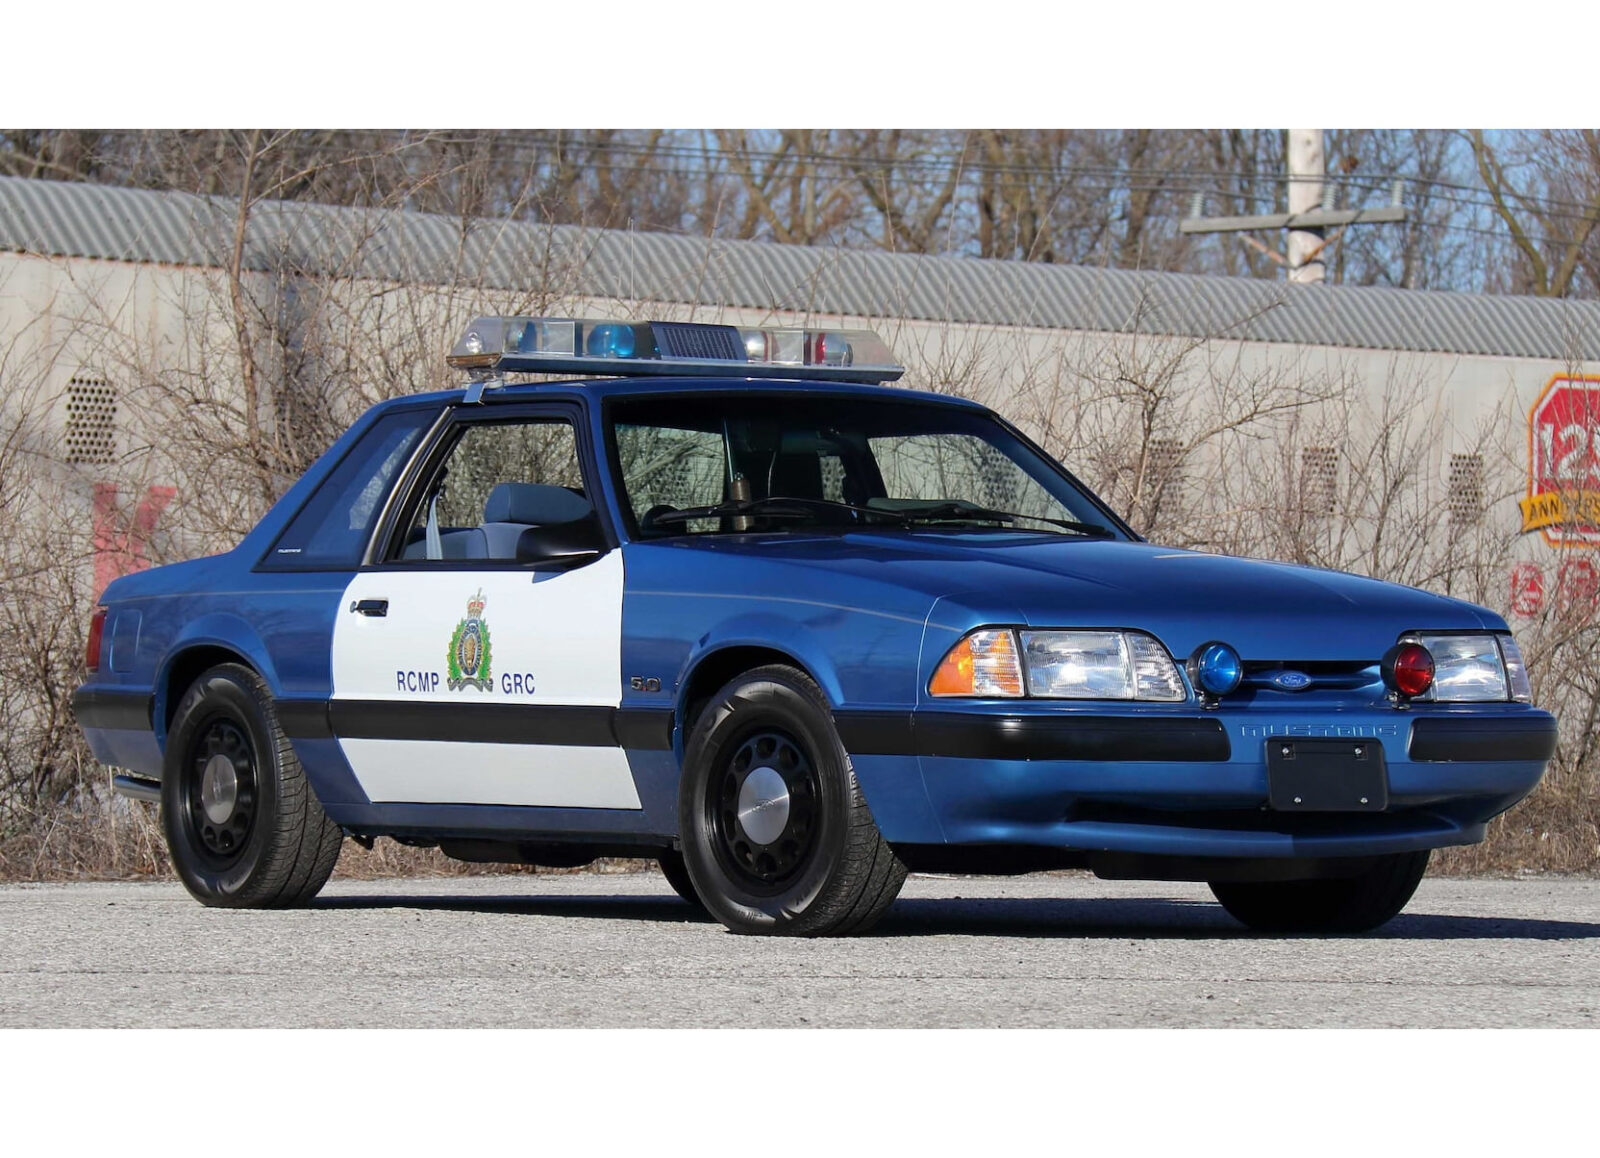 Royal Canadian Mounted Police Ford Mustang Patrol Car